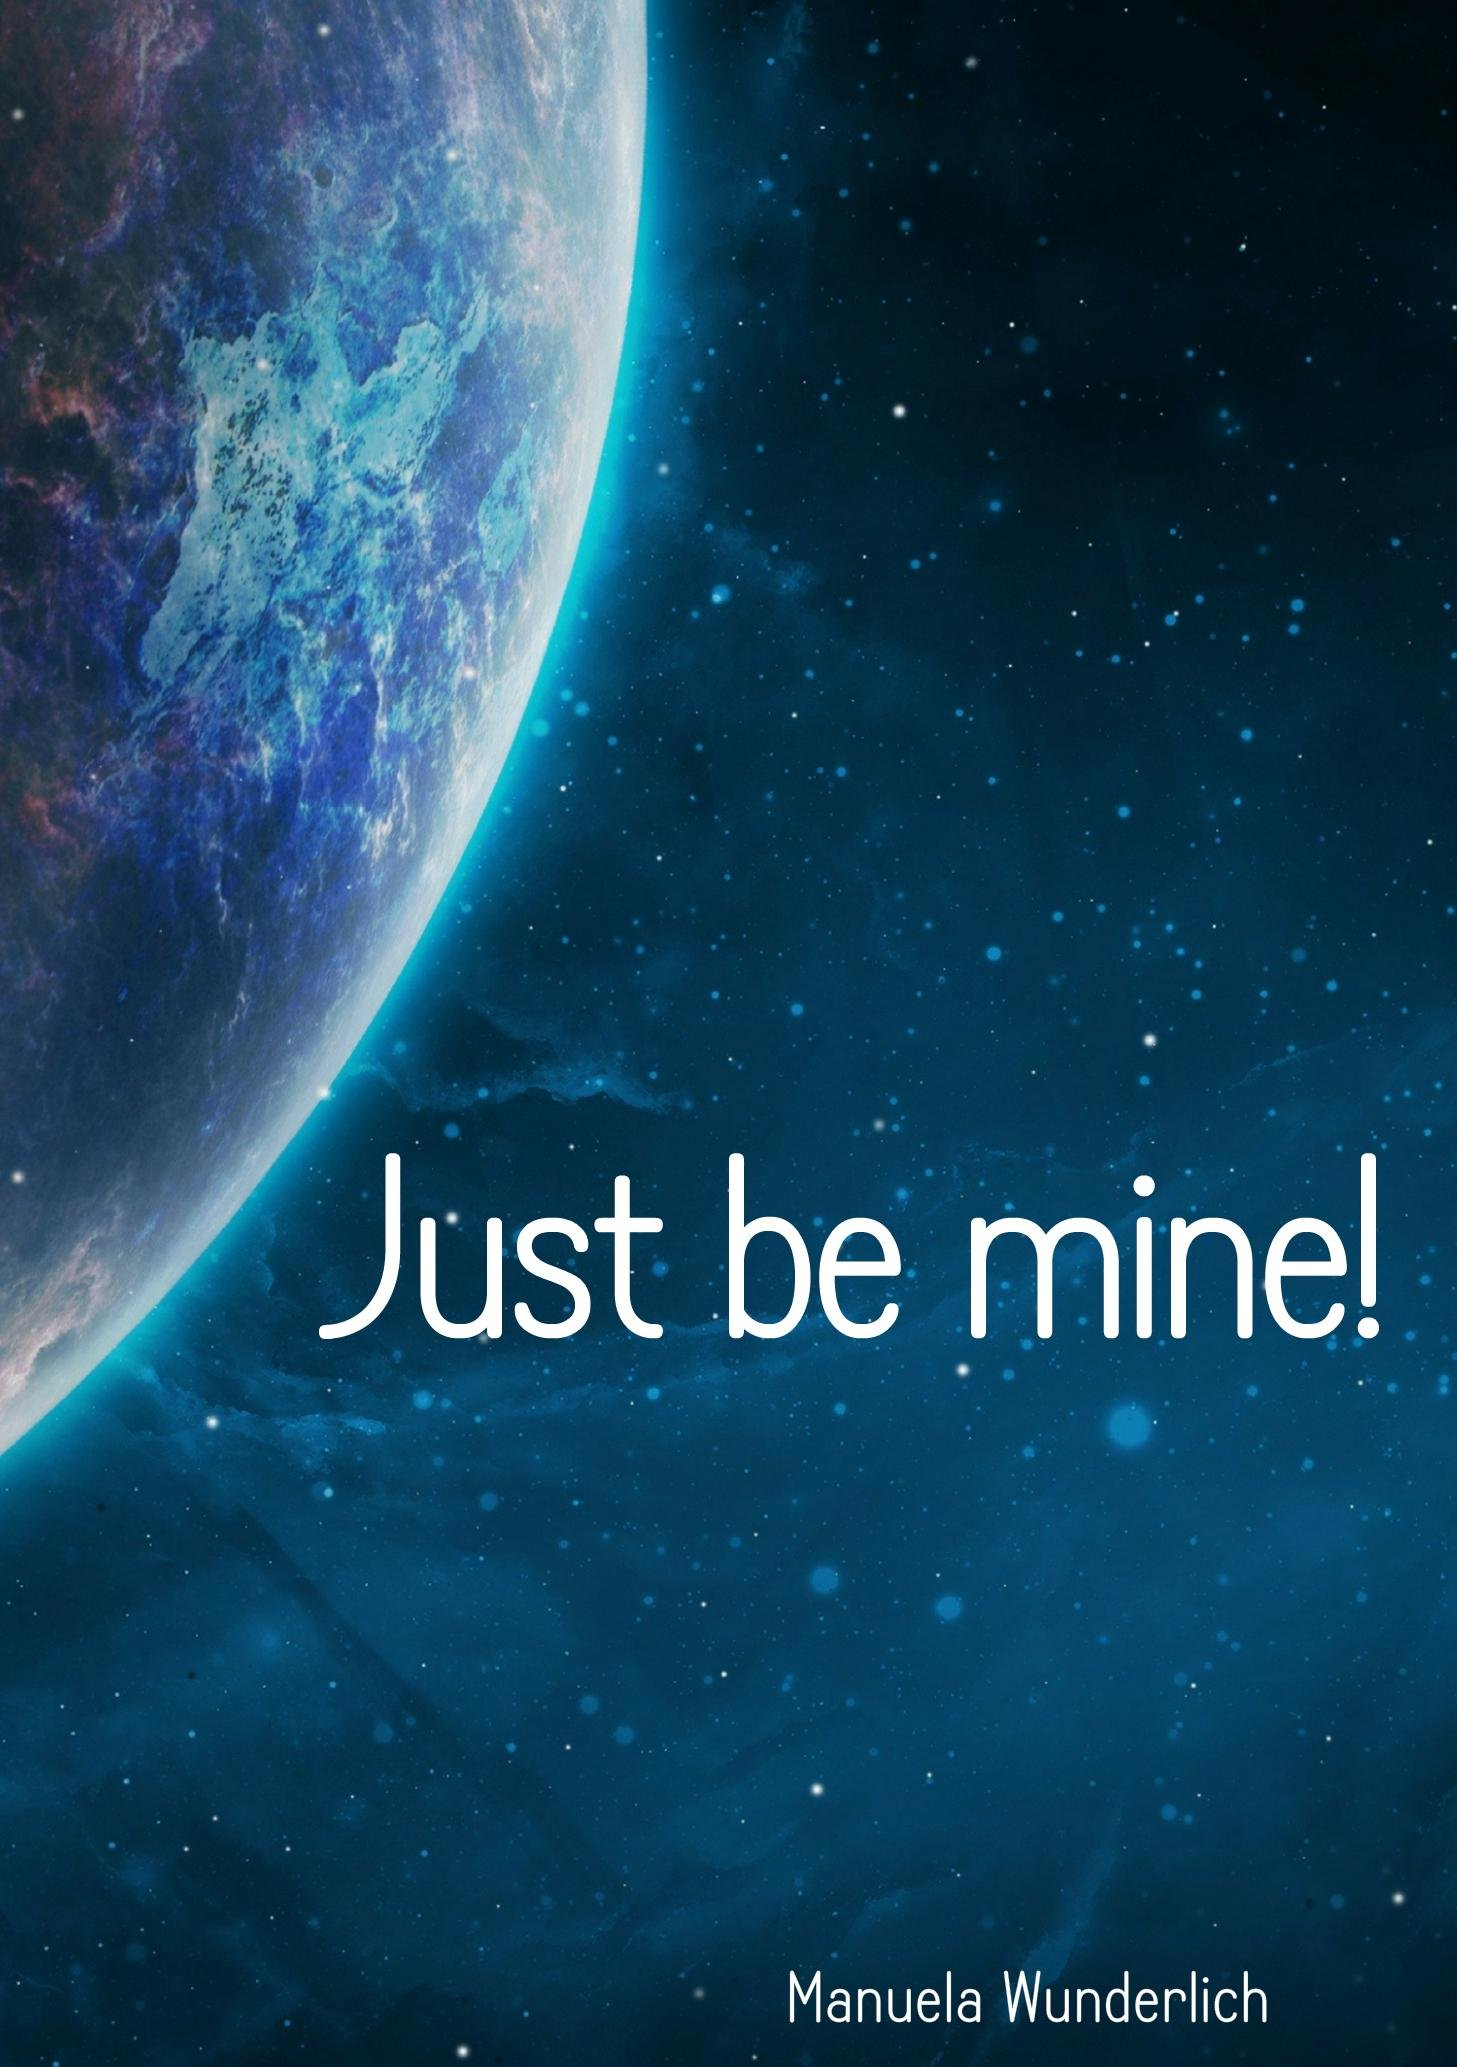 Just be mine!